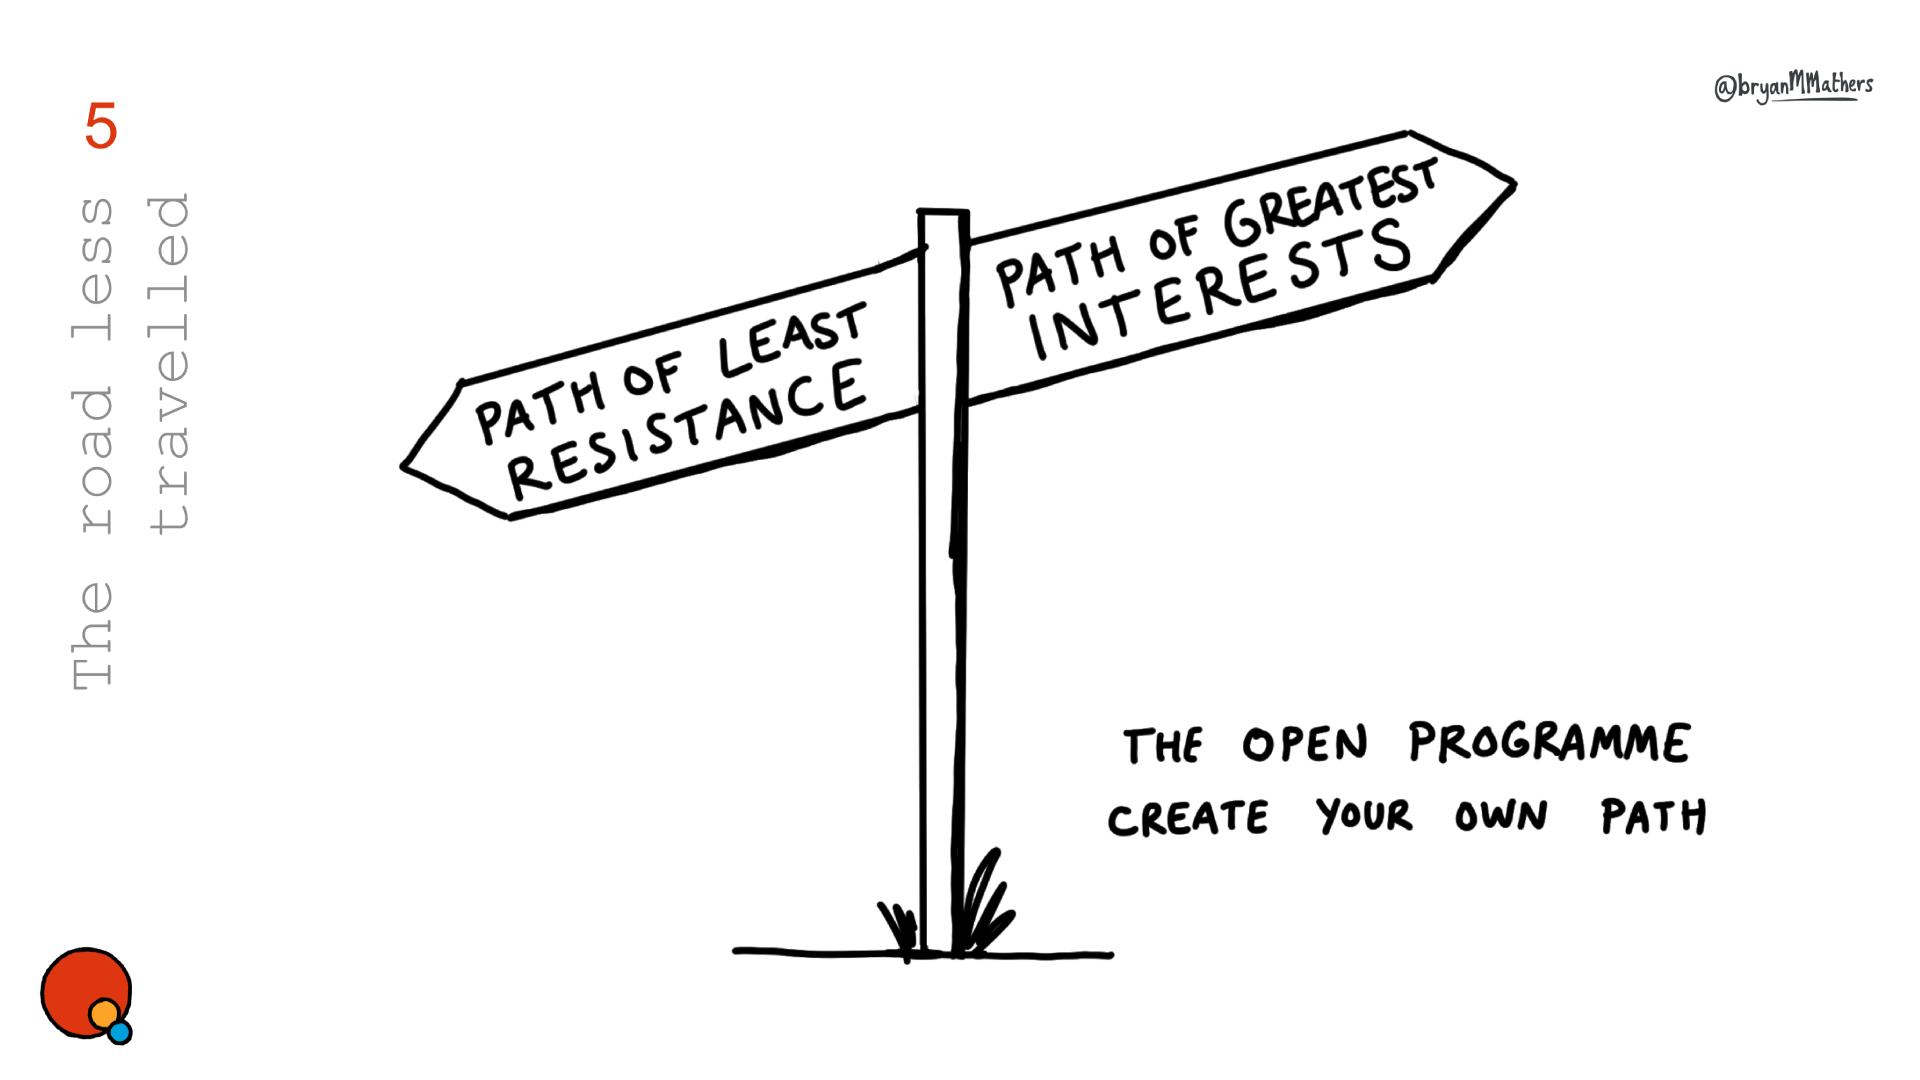 OU Open Degree - Path of greatest interest